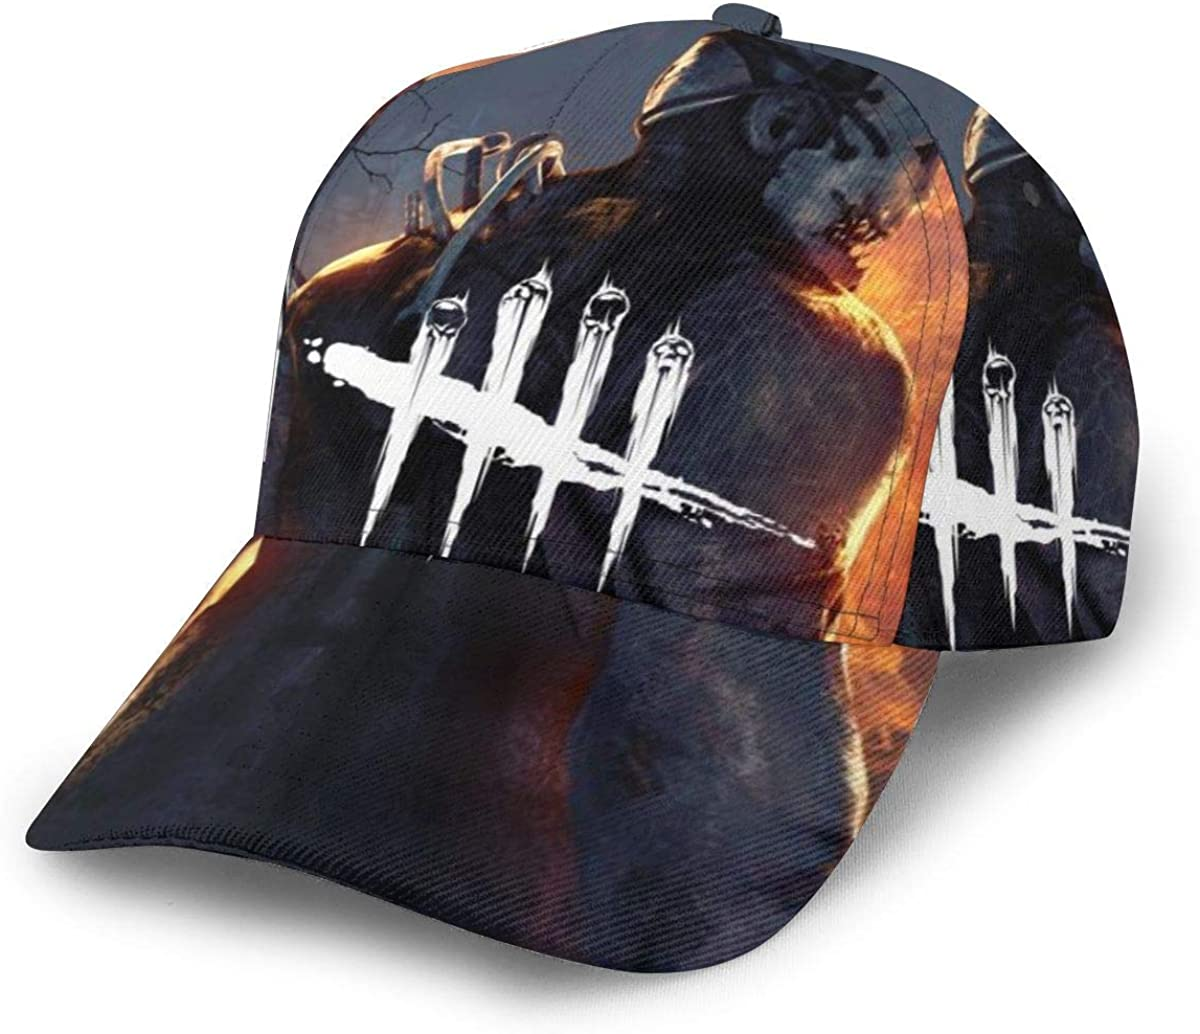 Dead by Daylight Baseball Cap Unisex Adjustable Hip Hop Hat Cotton Classic Washed Men Women Hat Black